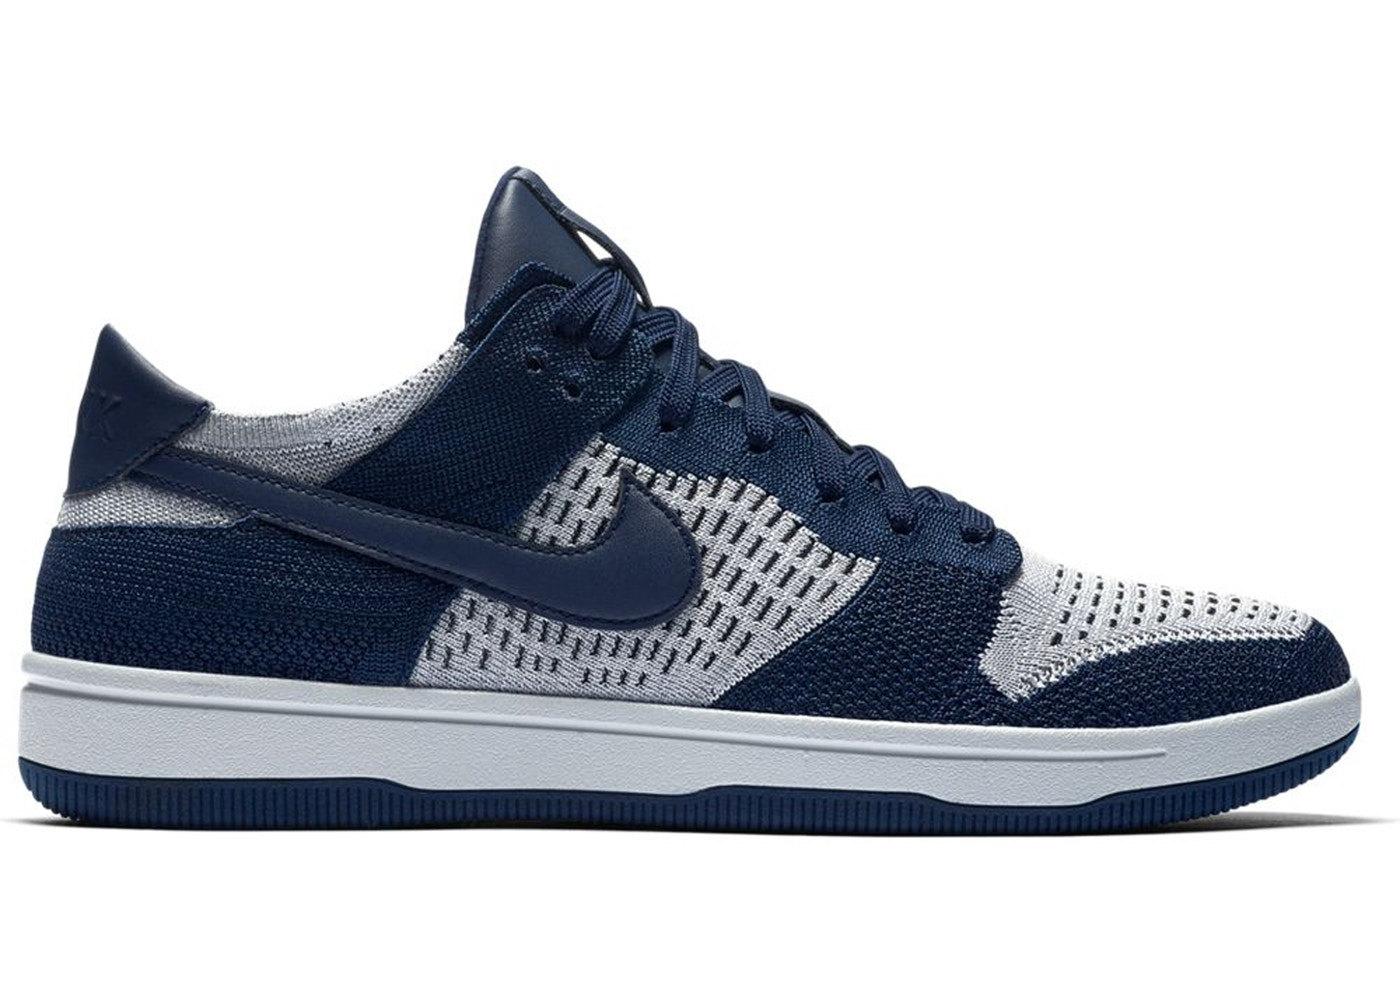 detailed look 4c713 98d37 Nike Dunk Low Flyknit College Navy Pure Platinum